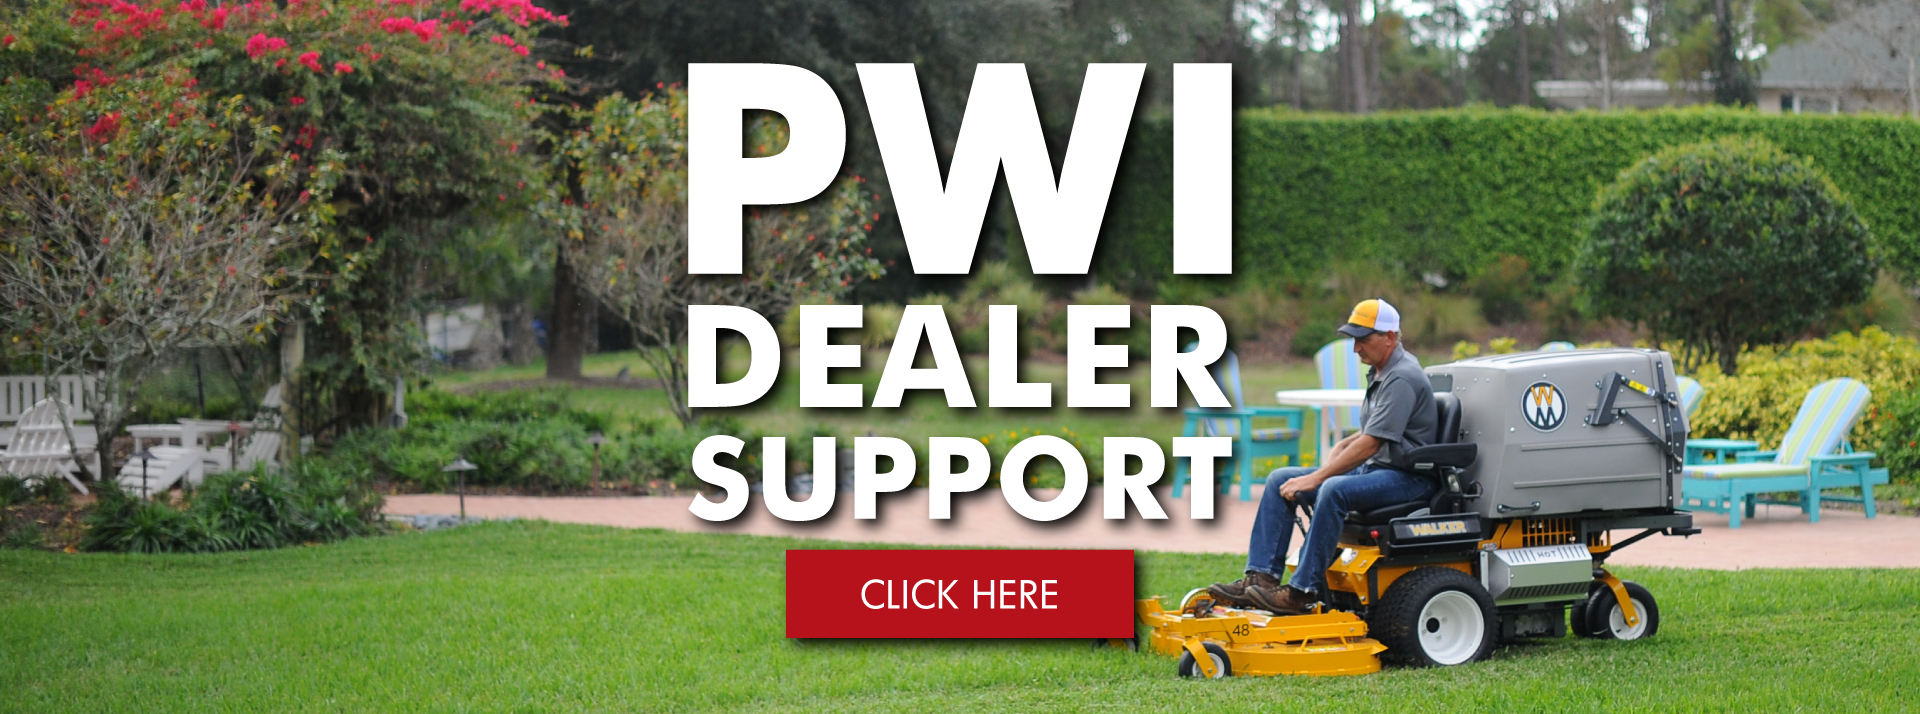 pwi-hero-dealersupport2